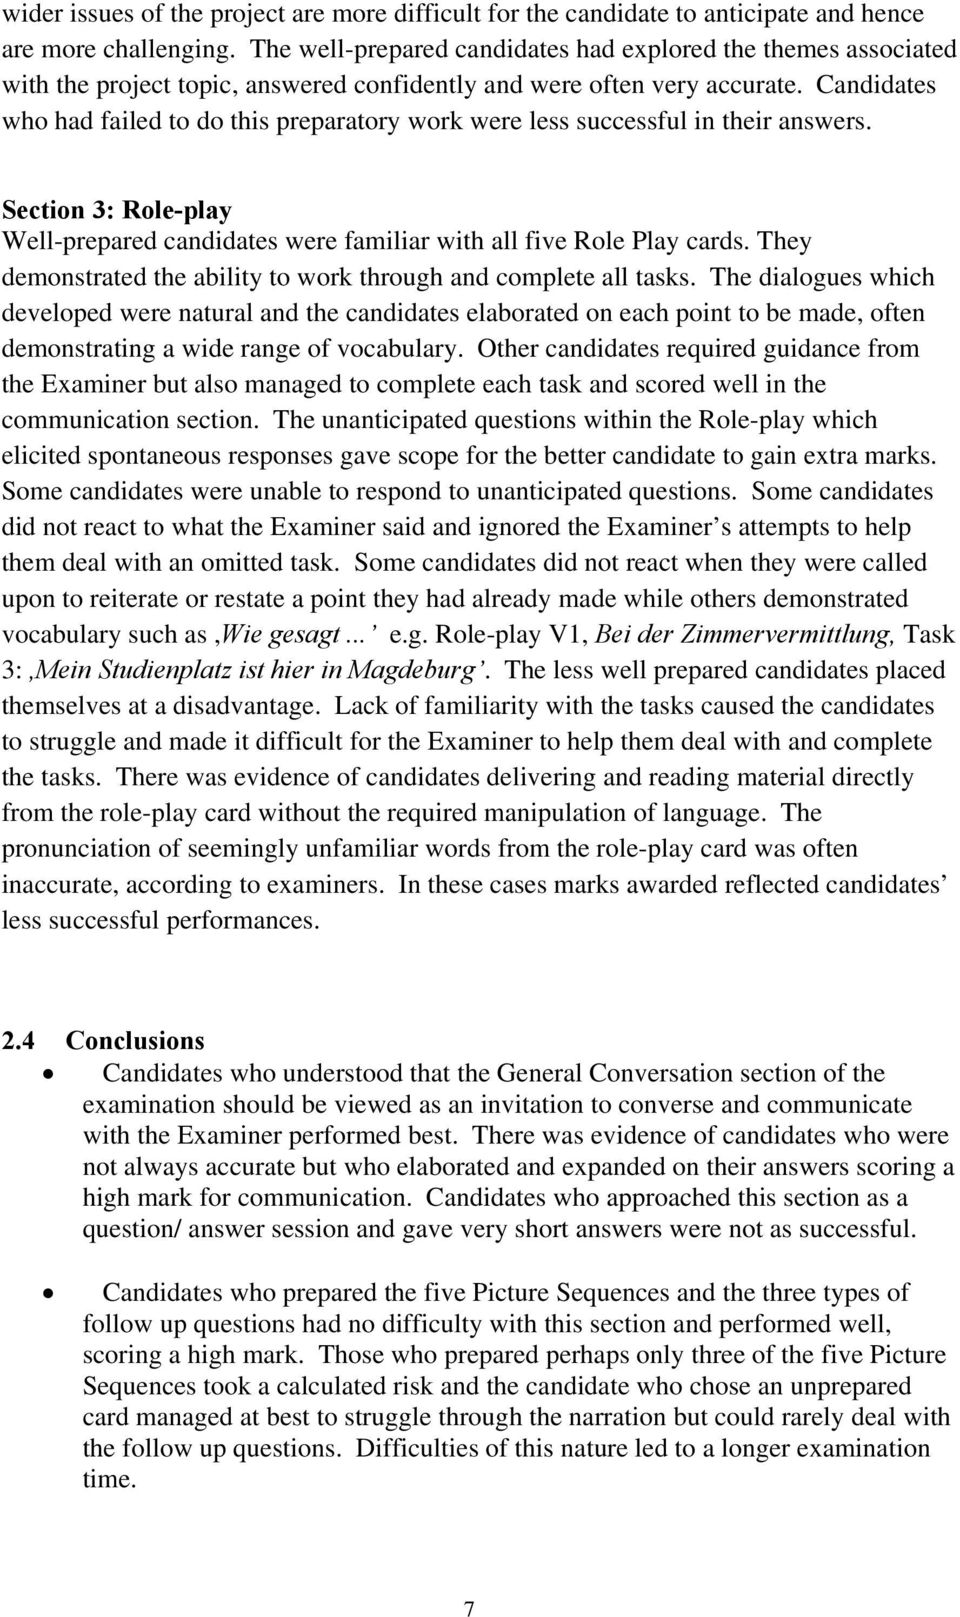 Candidates who had failed to do this preparatory work were less successful in their answers. Section 3: Role-play Well-prepared candidates were familiar with all five Role Play cards.